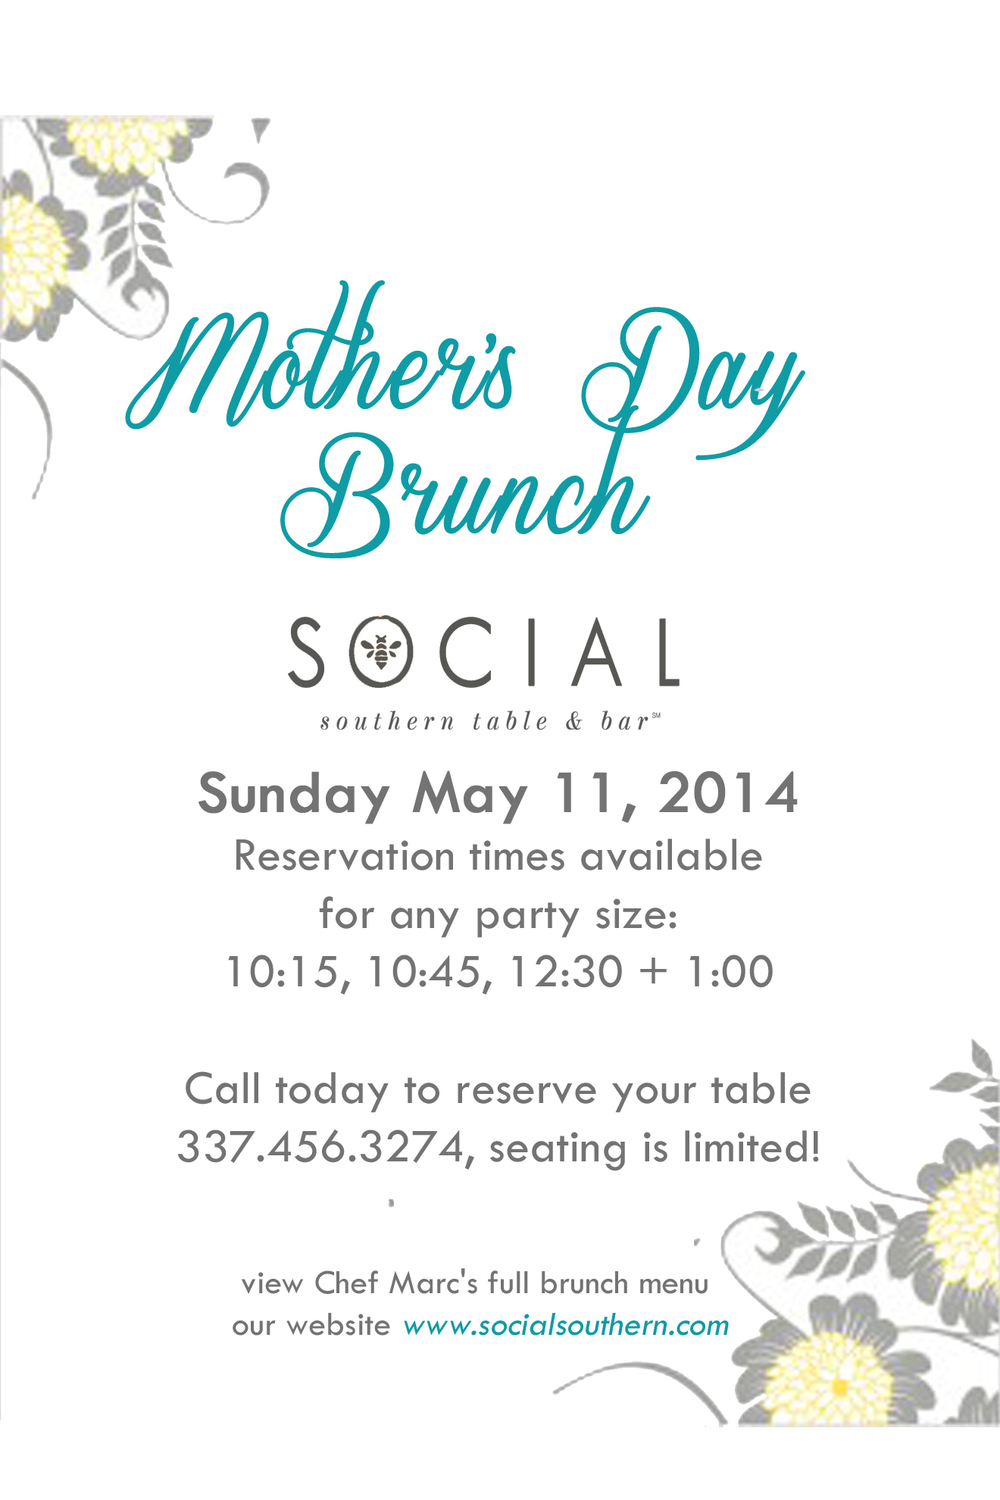 2014 Mother's Day Brunch flier copy.jpg